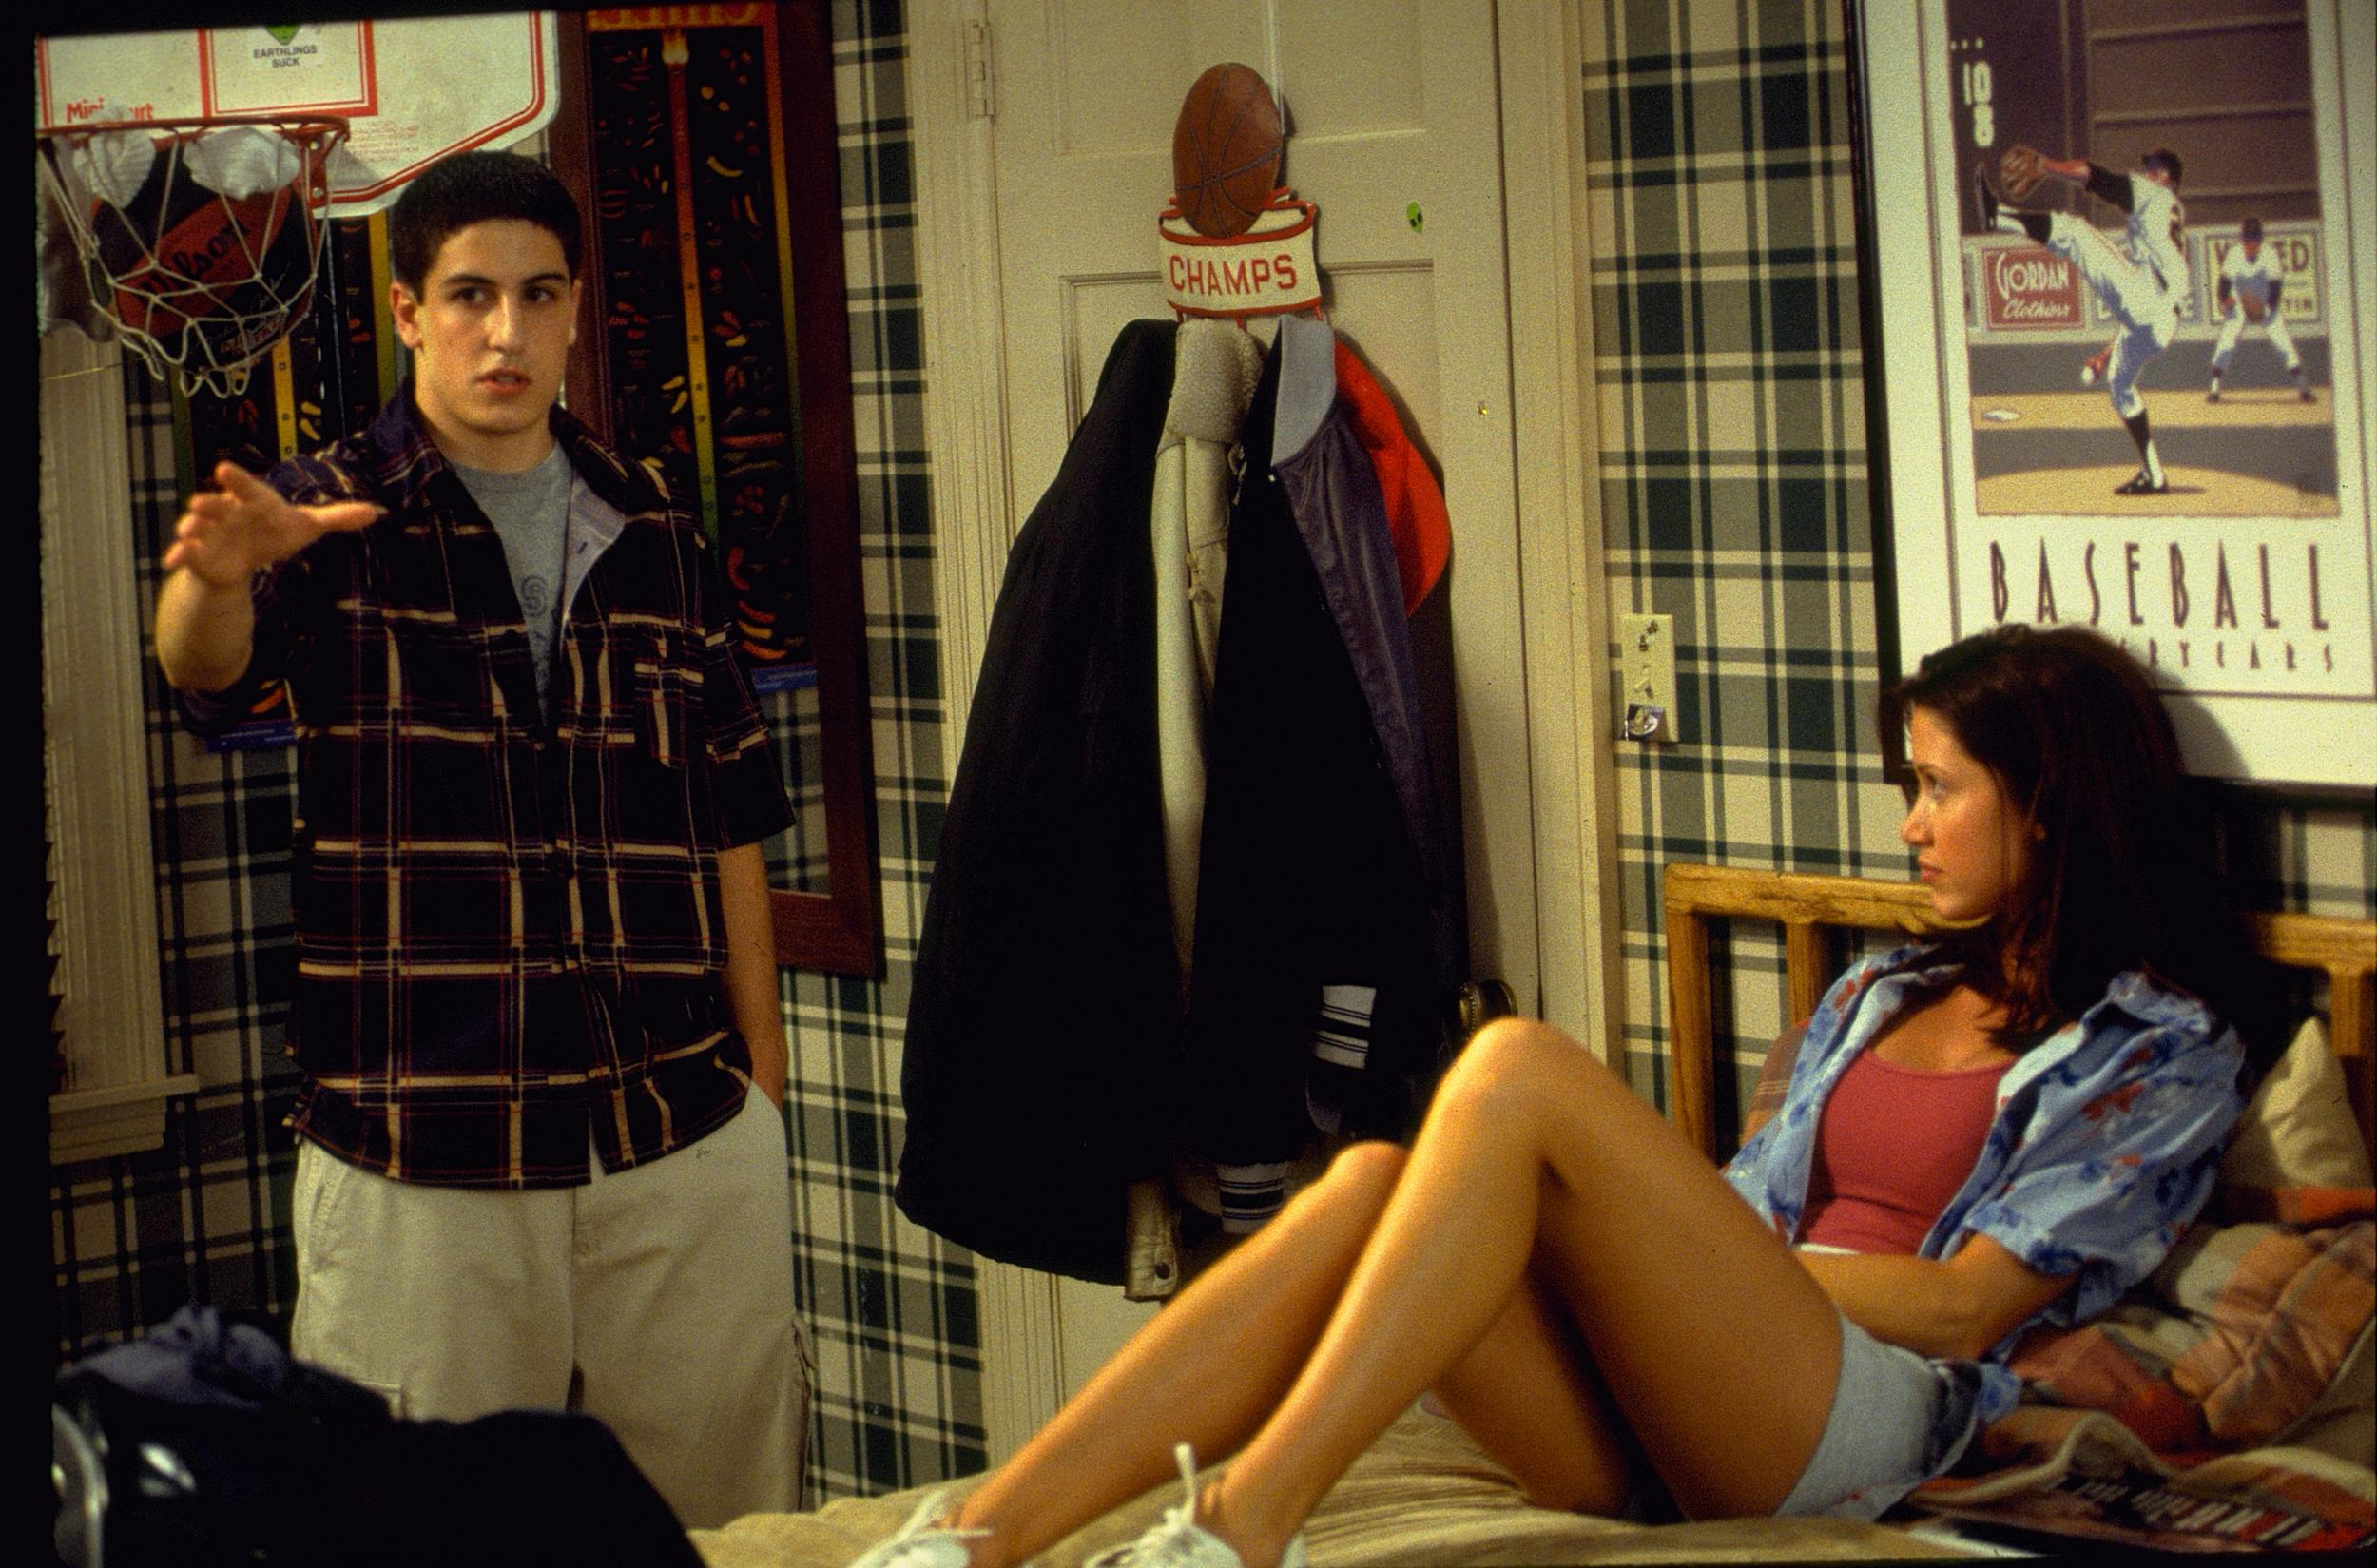 American Pie Uncensored Video american pie star reflects on film's most iconic scene post